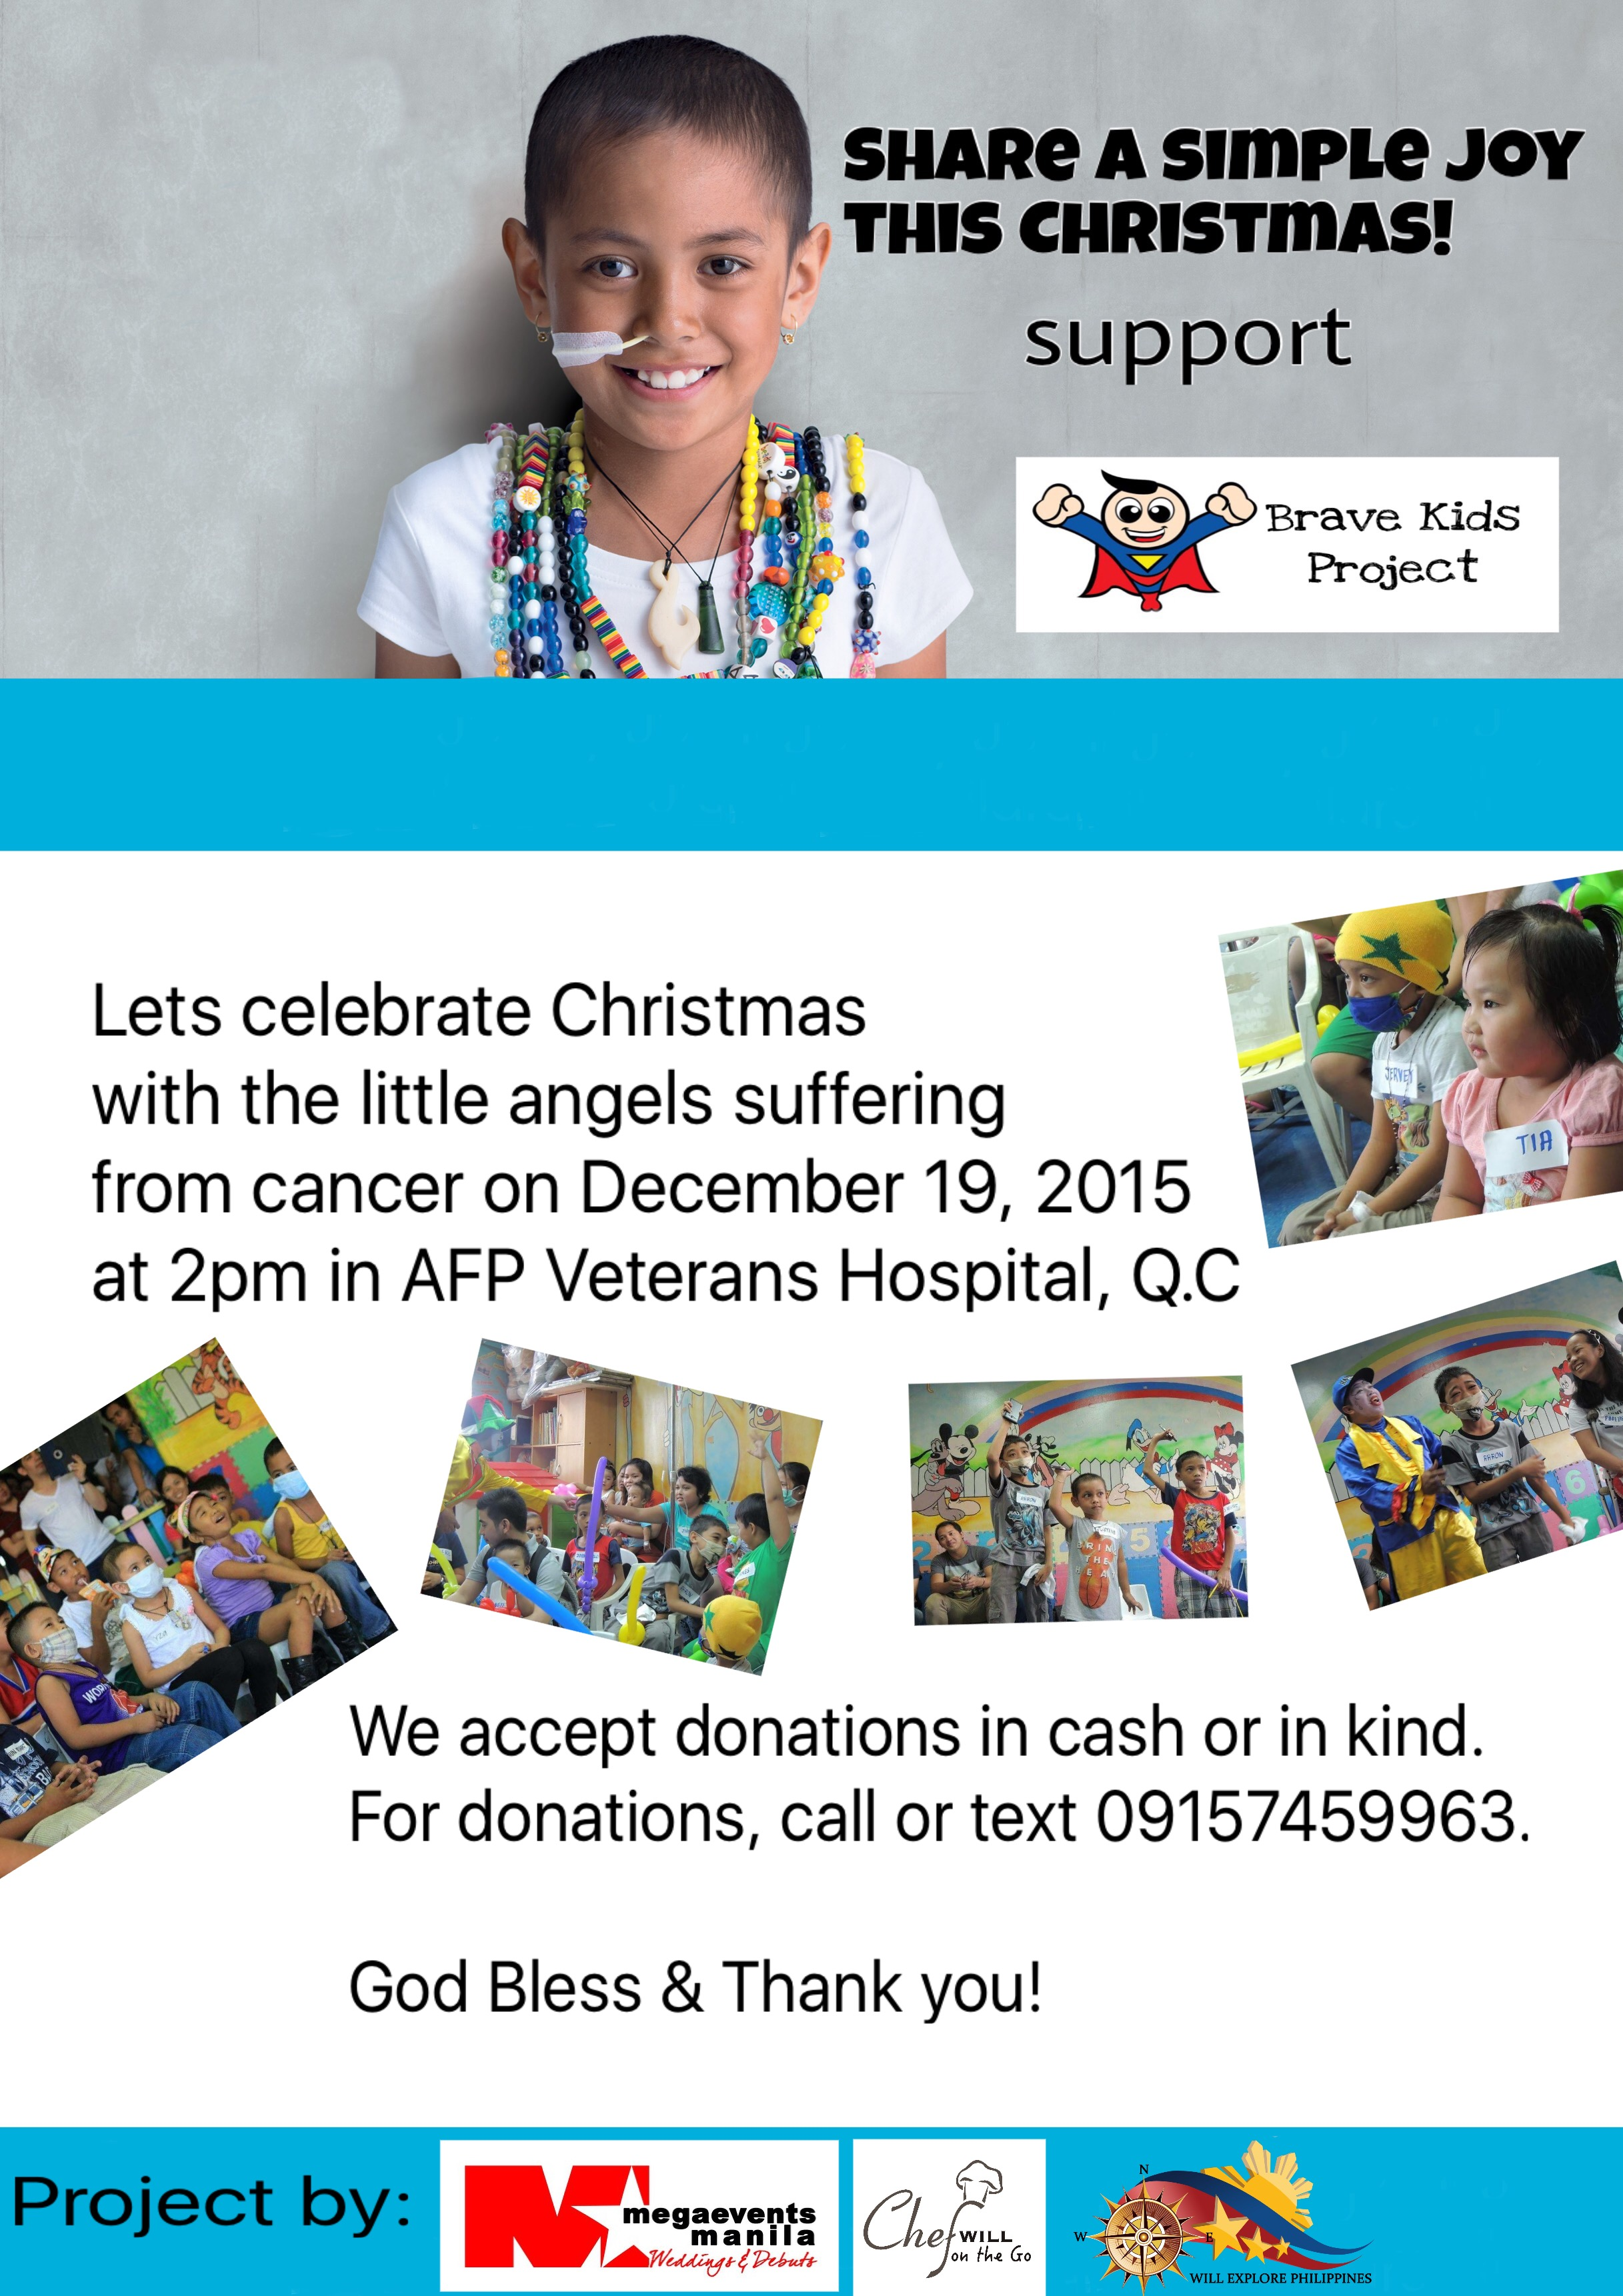 Super Kids Project: Share a Simple Joy this Christmas